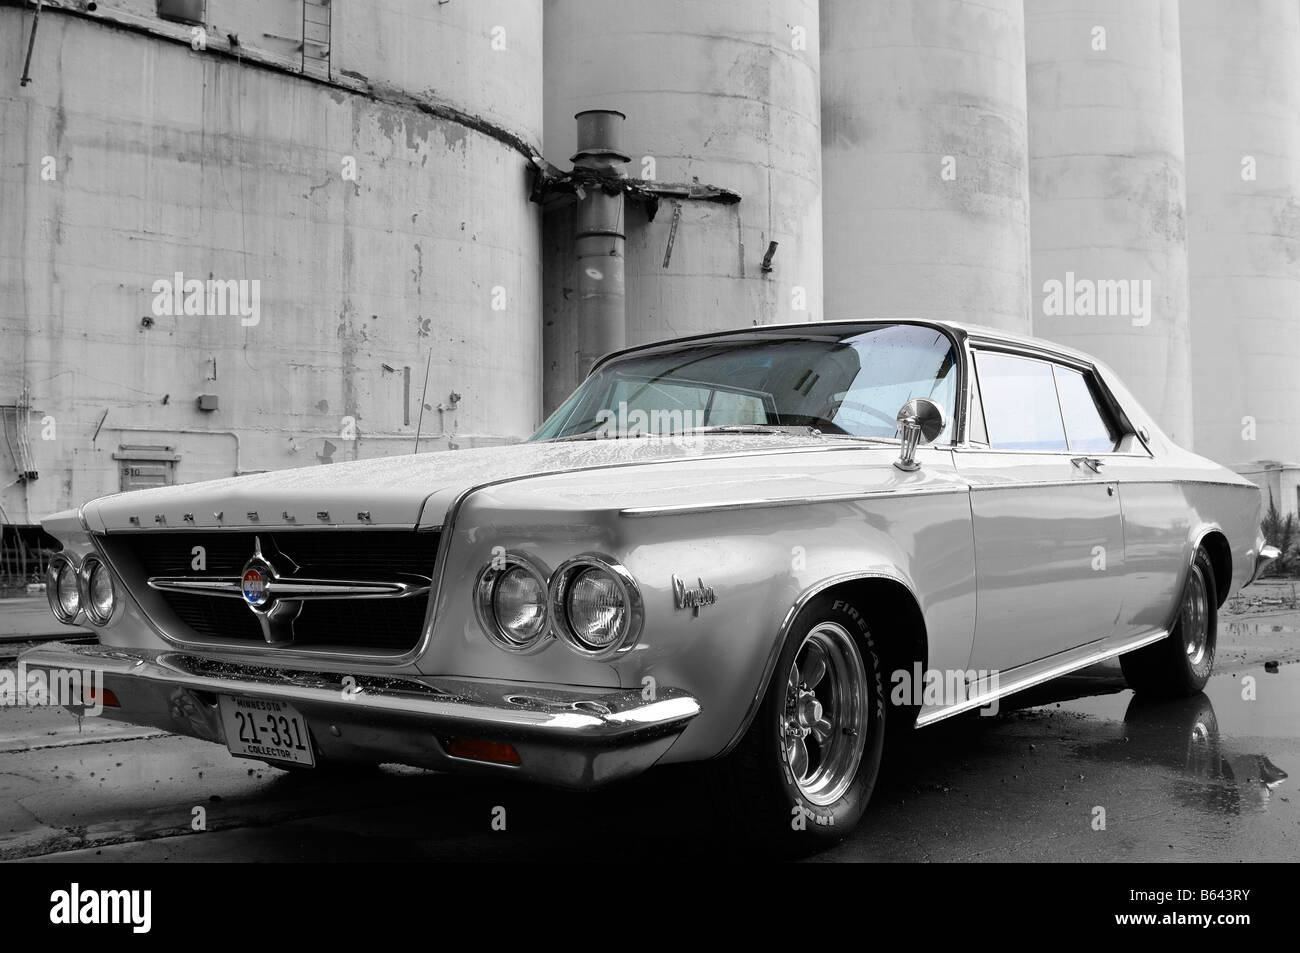 1963 Chrysler 300 white two door classic car by industrial silos monochrome - Stock Image